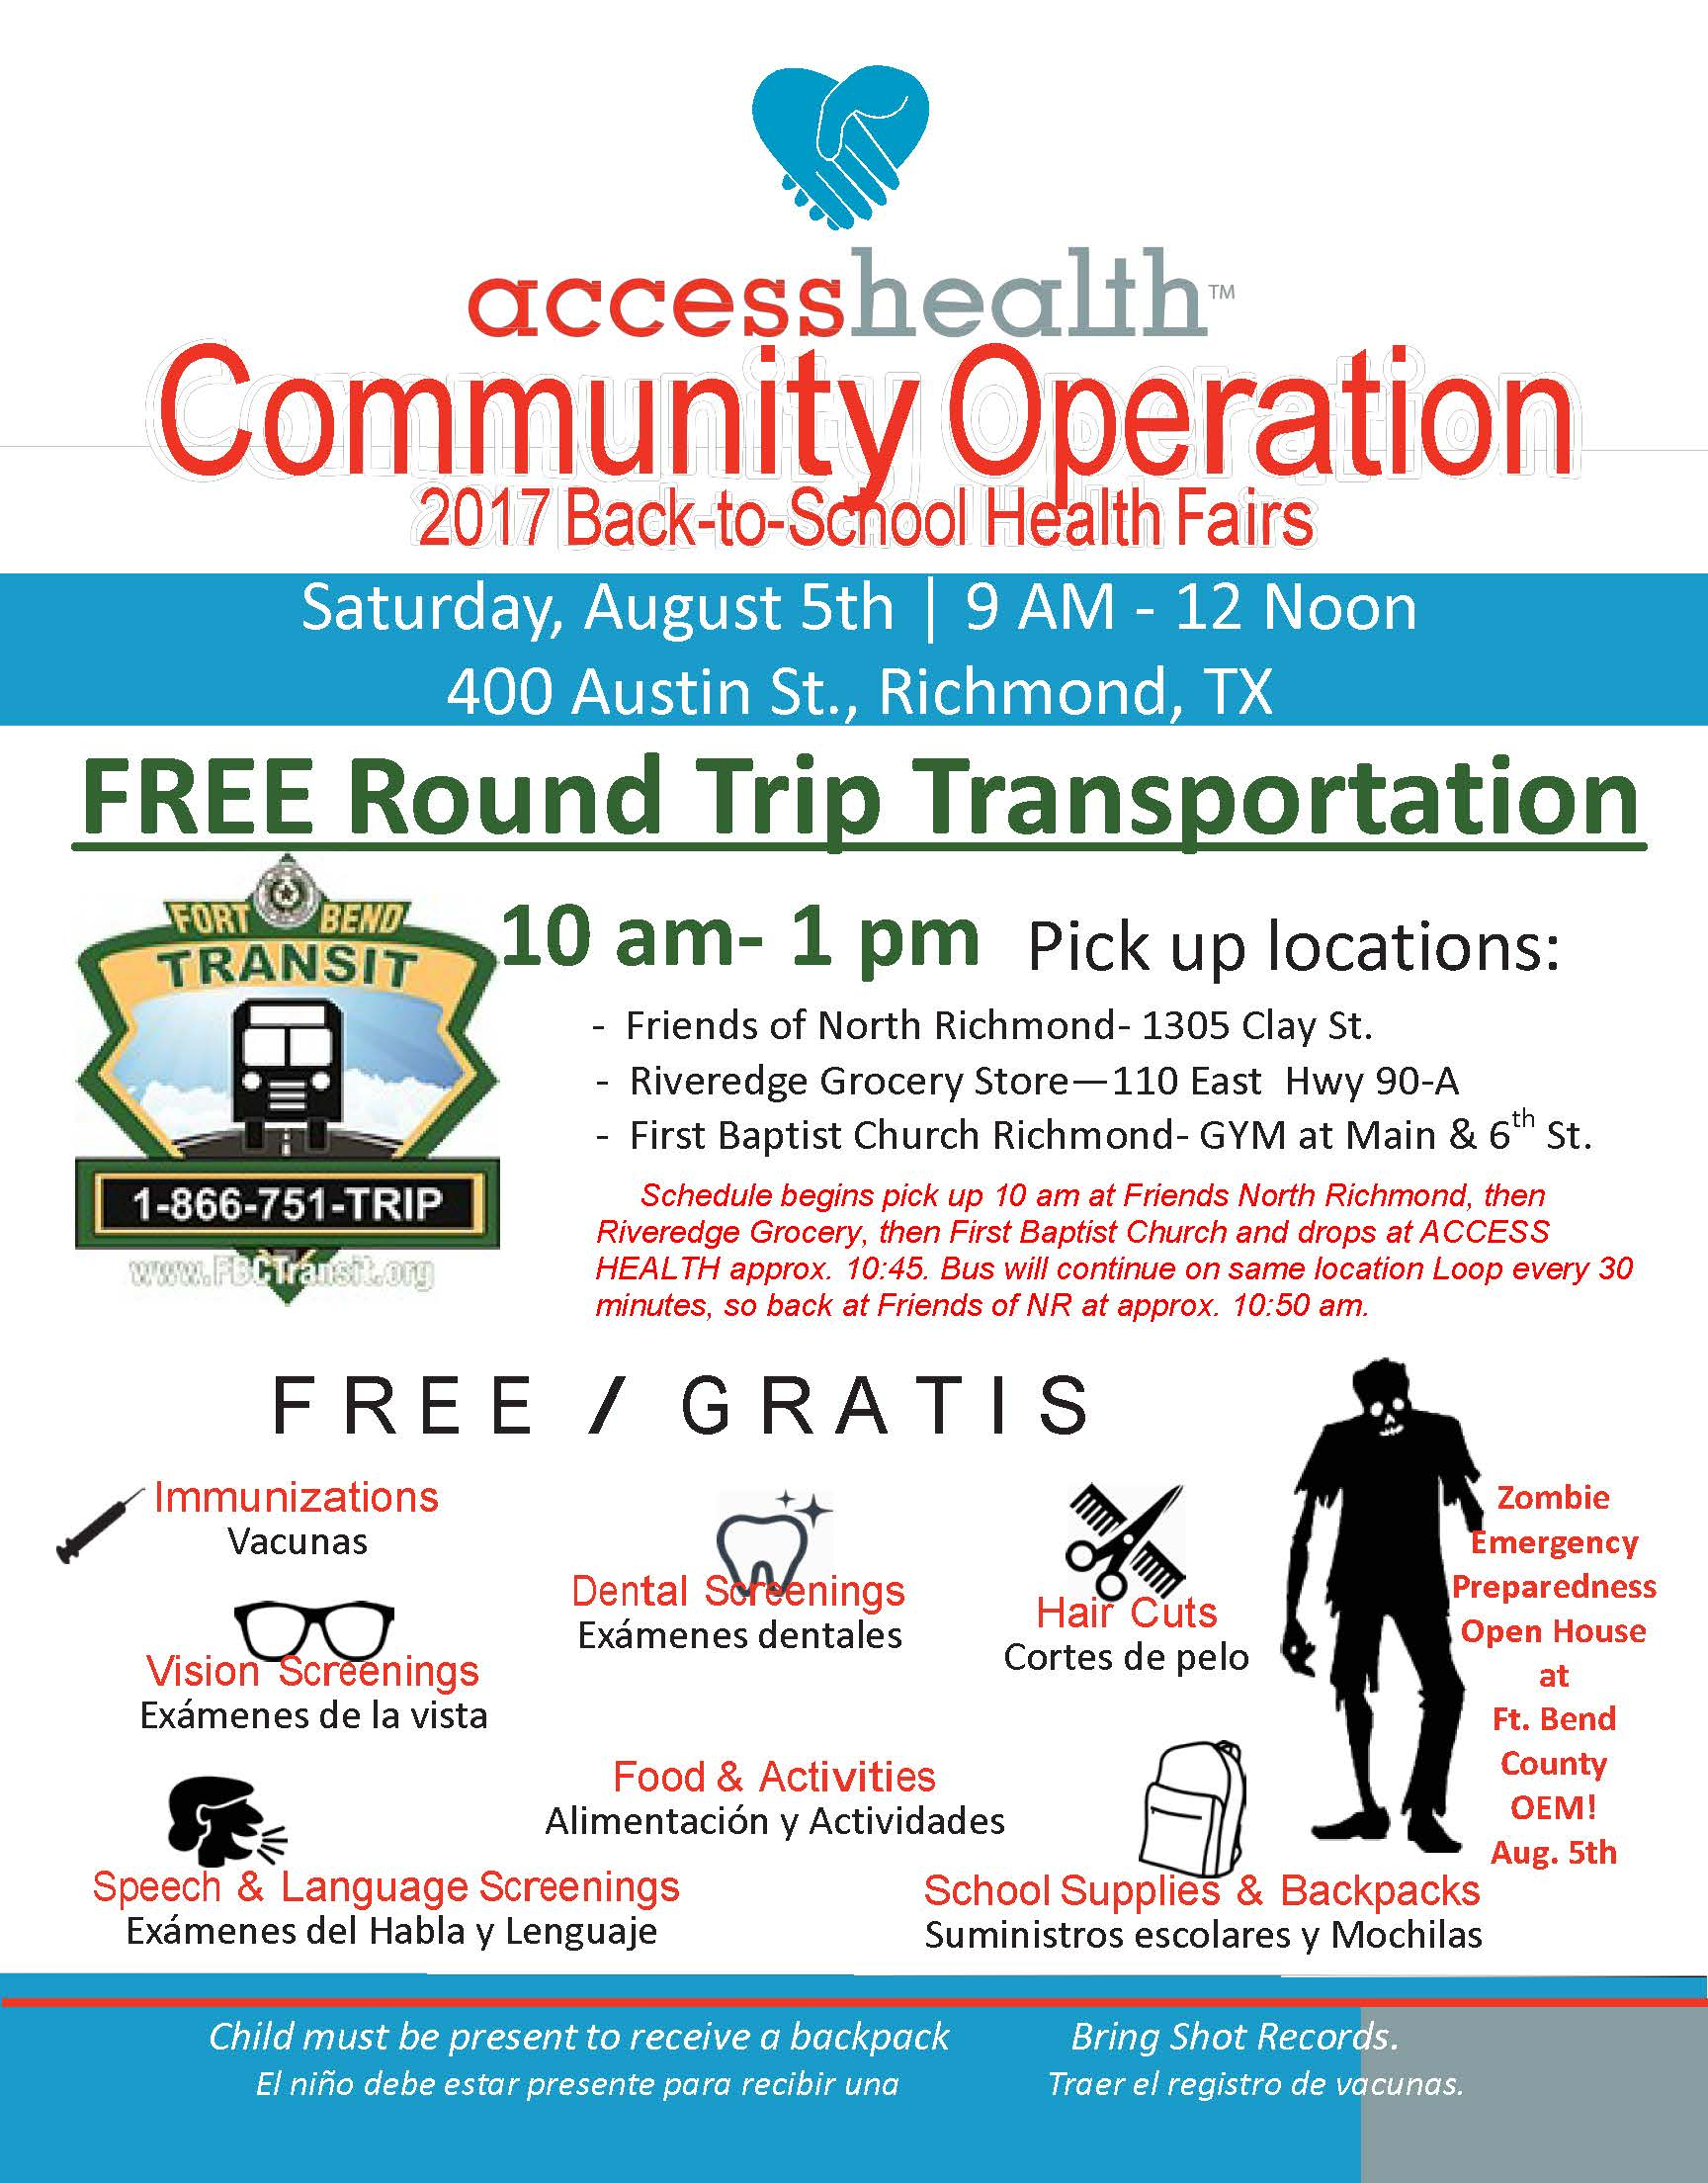 Ft Bend County Bus Services Assisting With Back to School Health